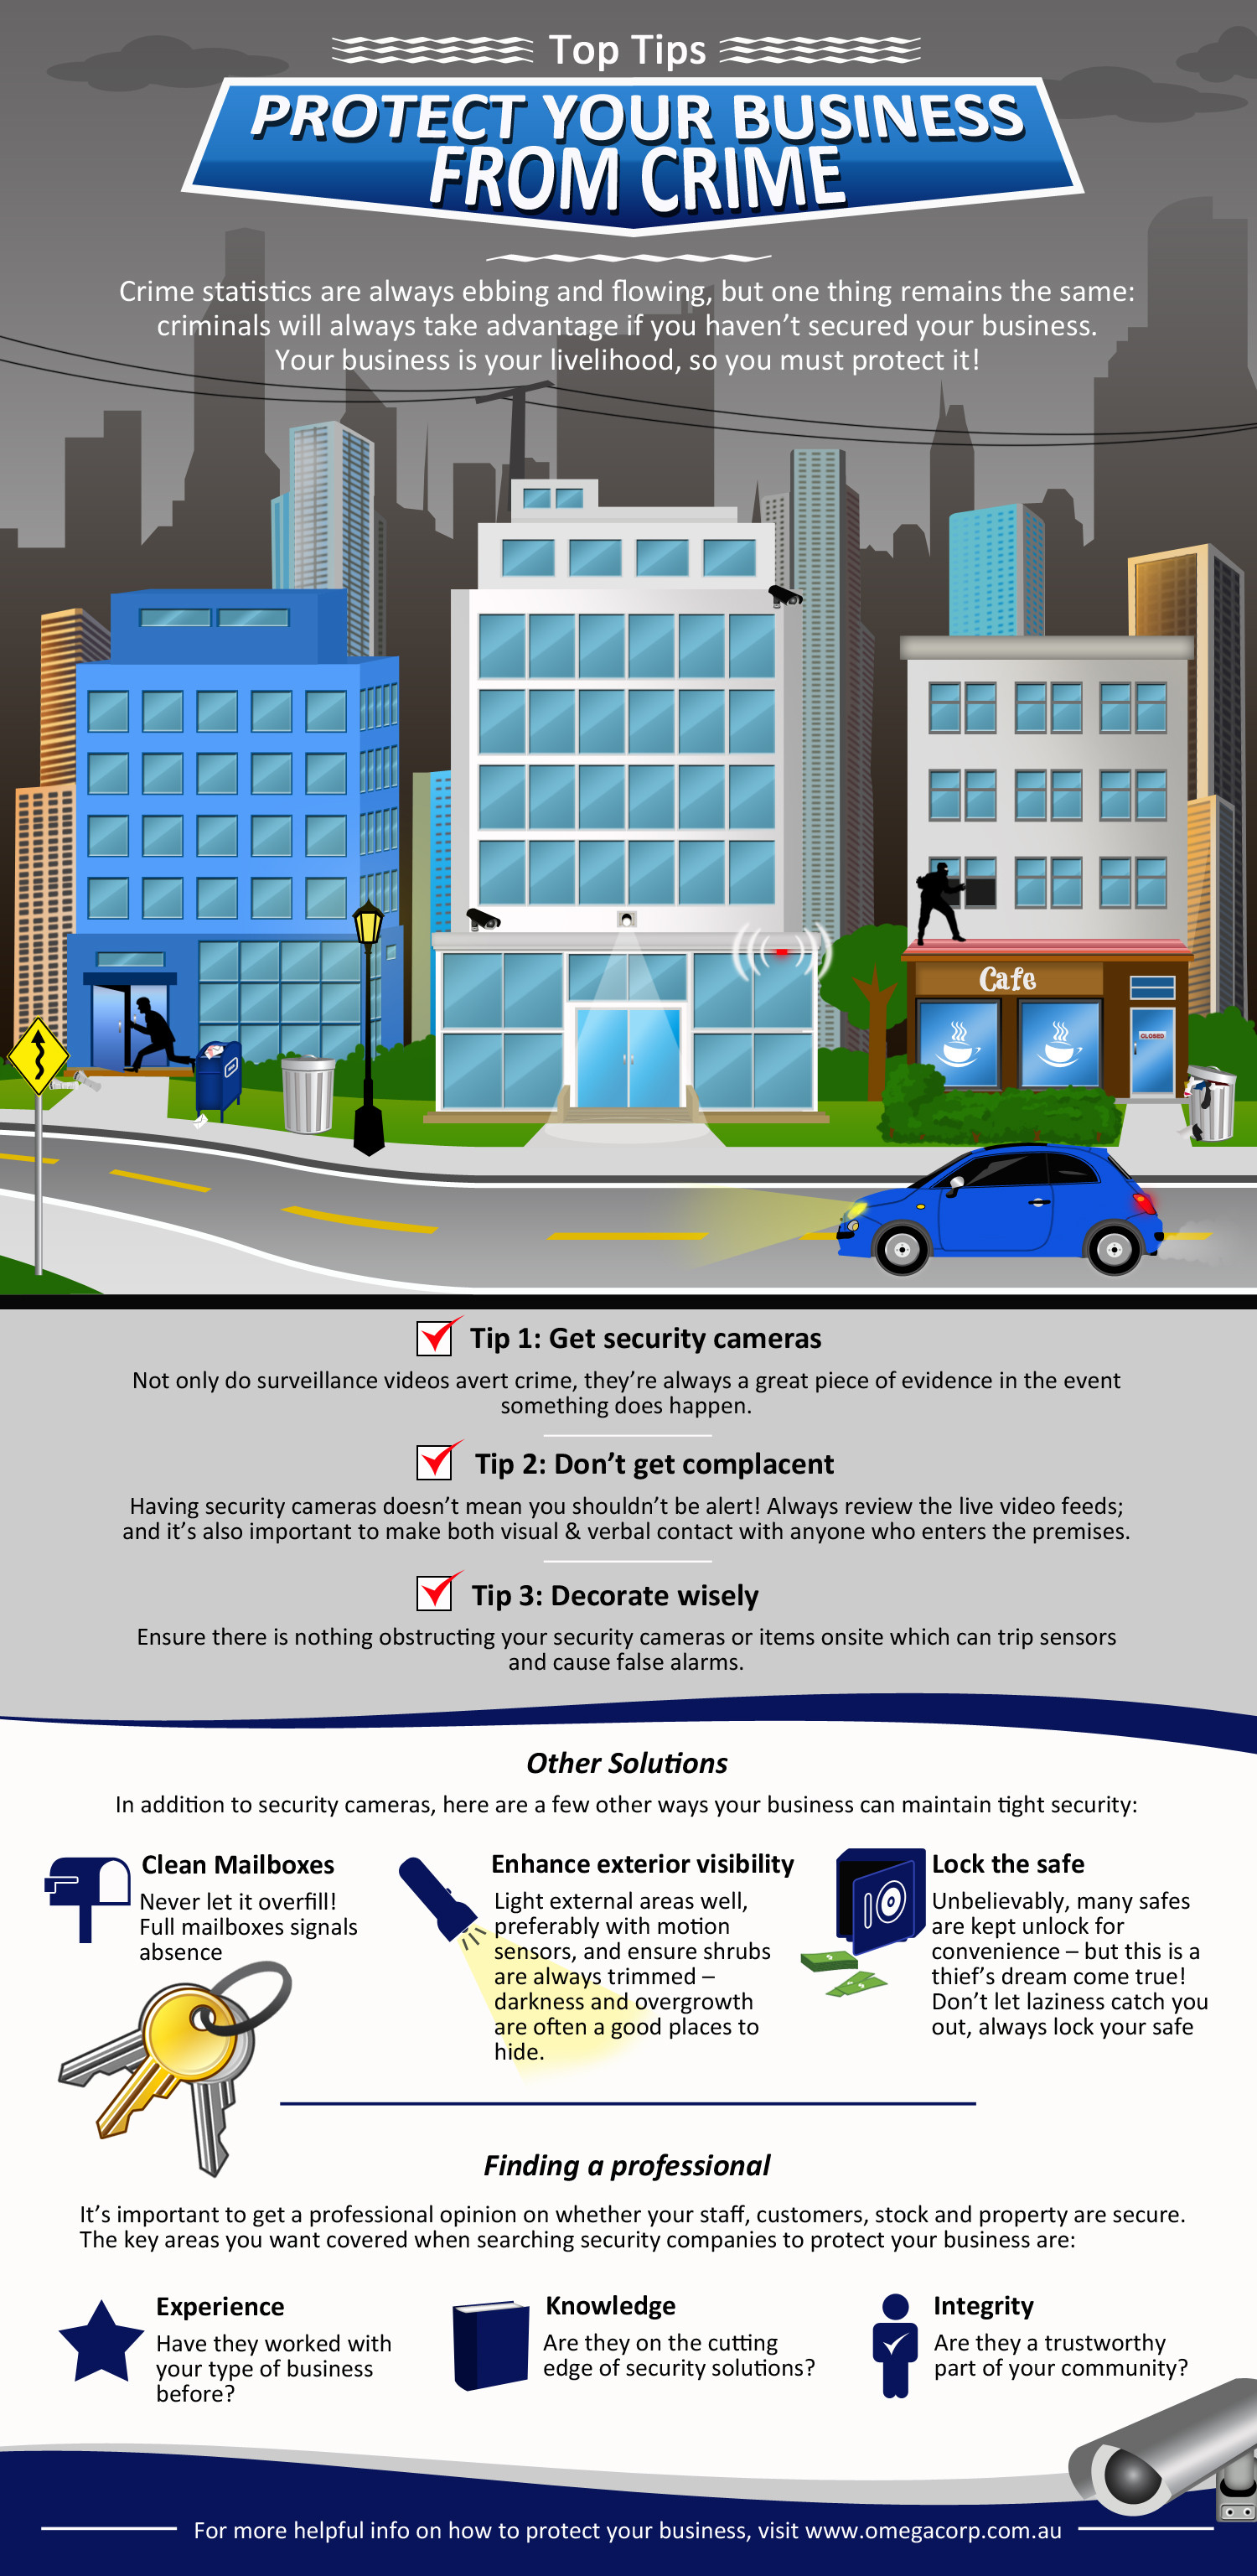 Top Tips to Protect Your Business From Crime Infographic